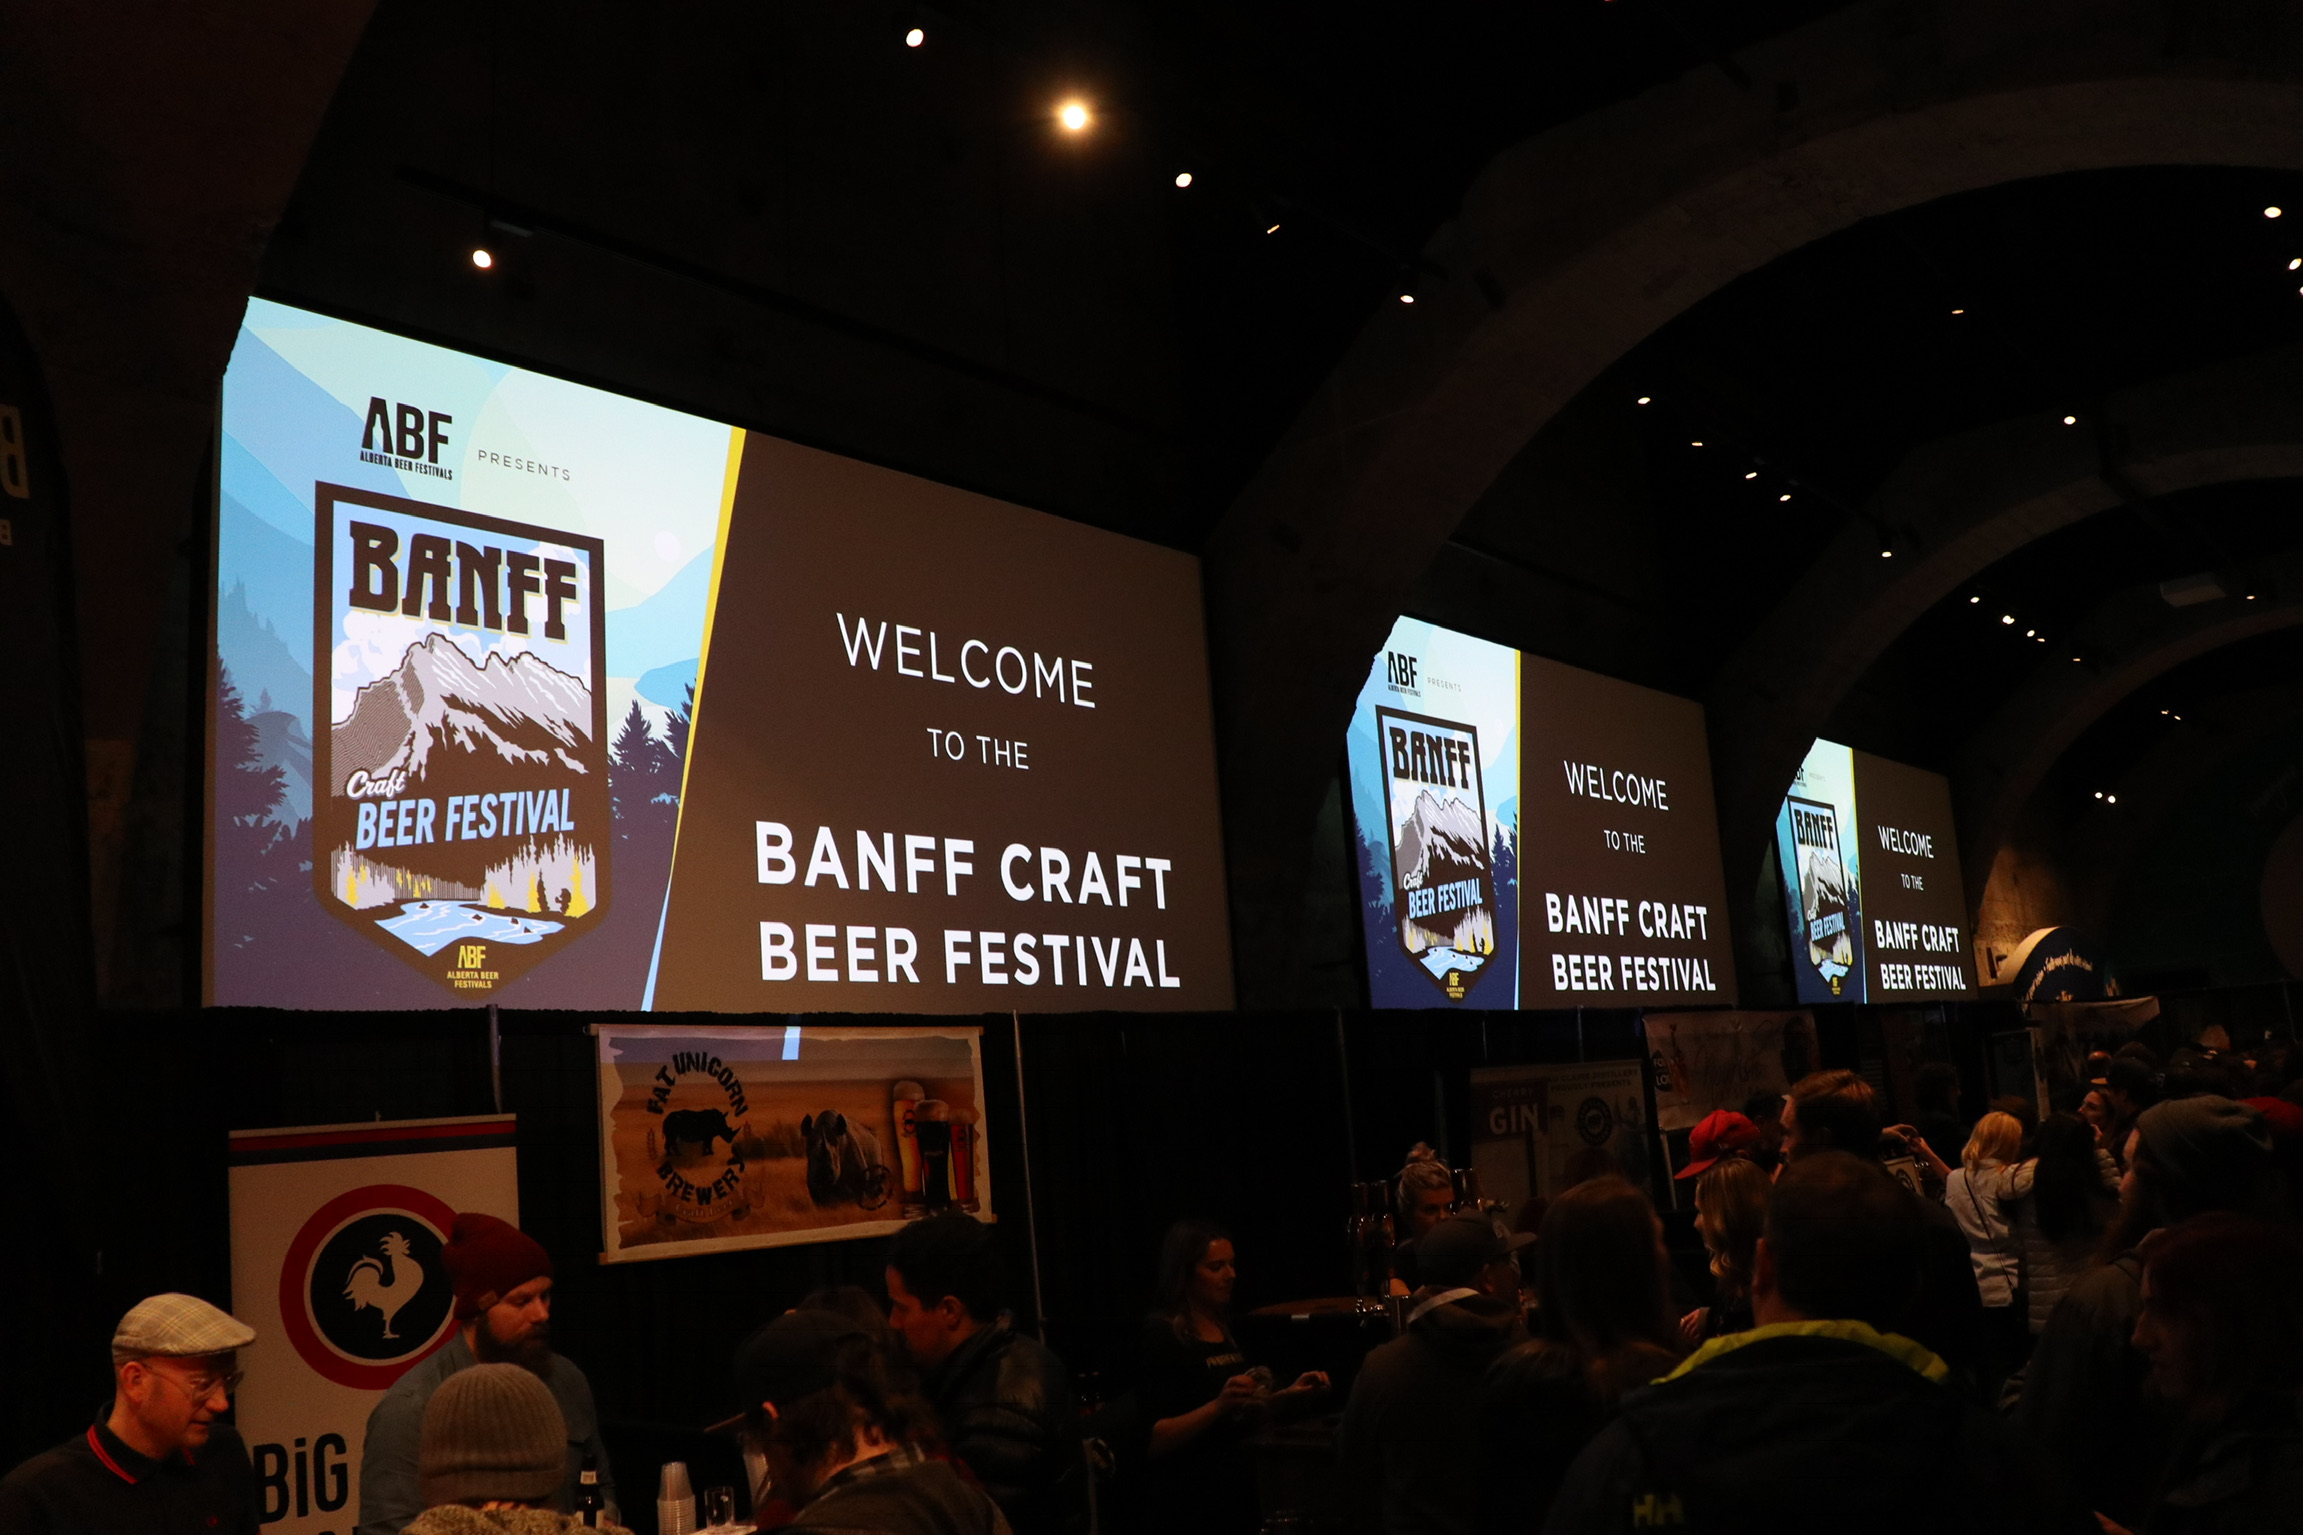 As the evening progressed during the Banff Craft Beer Festival.